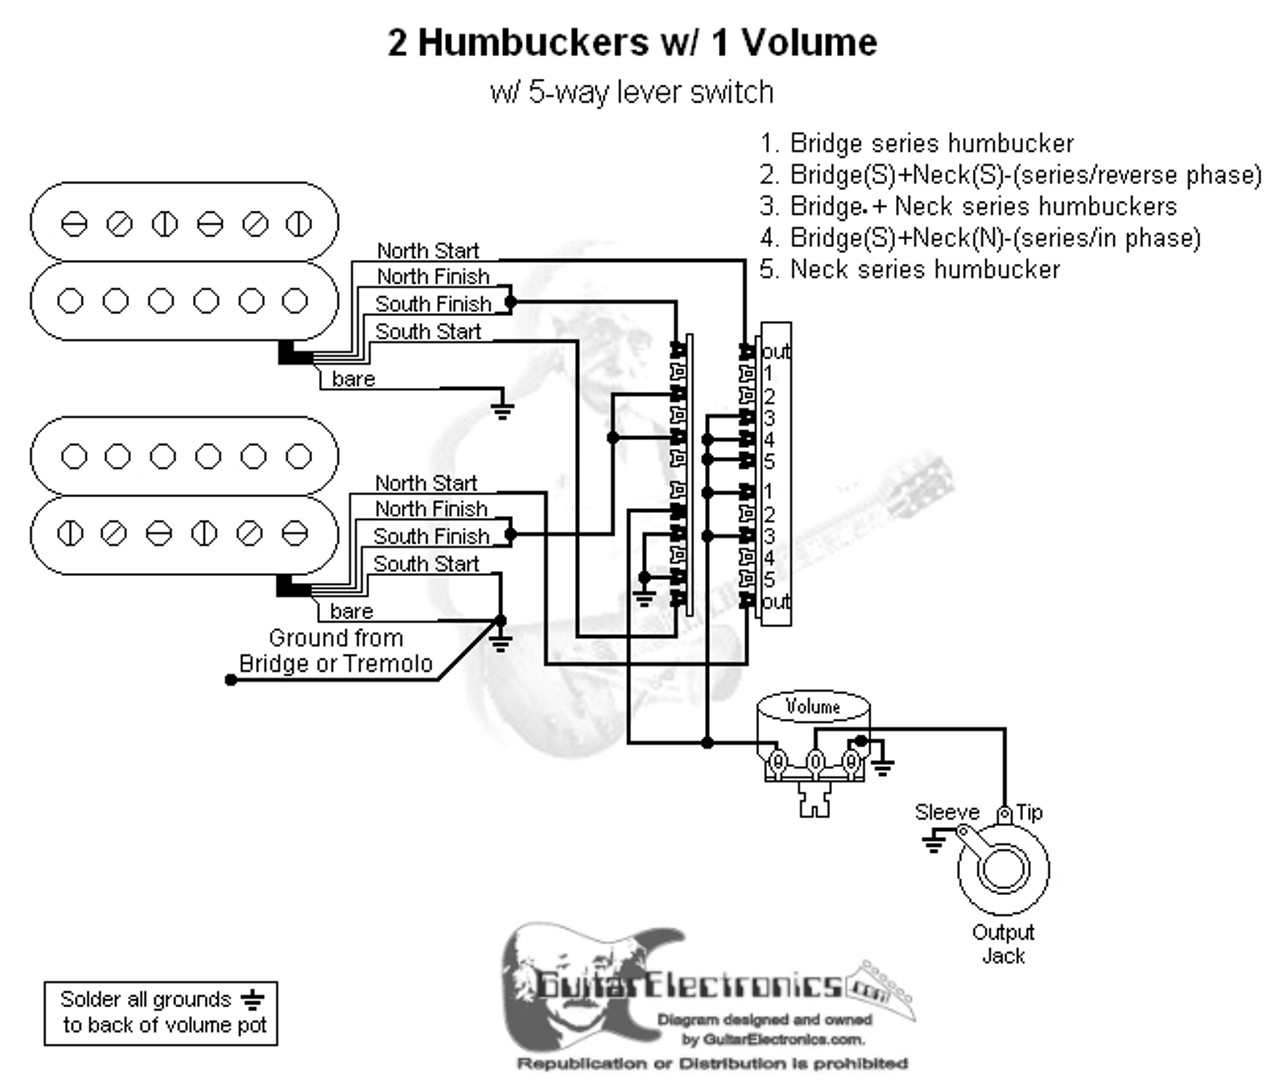 hight resolution of wiring diagram 2 humbuckers 5way lever switch 1 volume 1 tone 03 art of tone wiring diagram